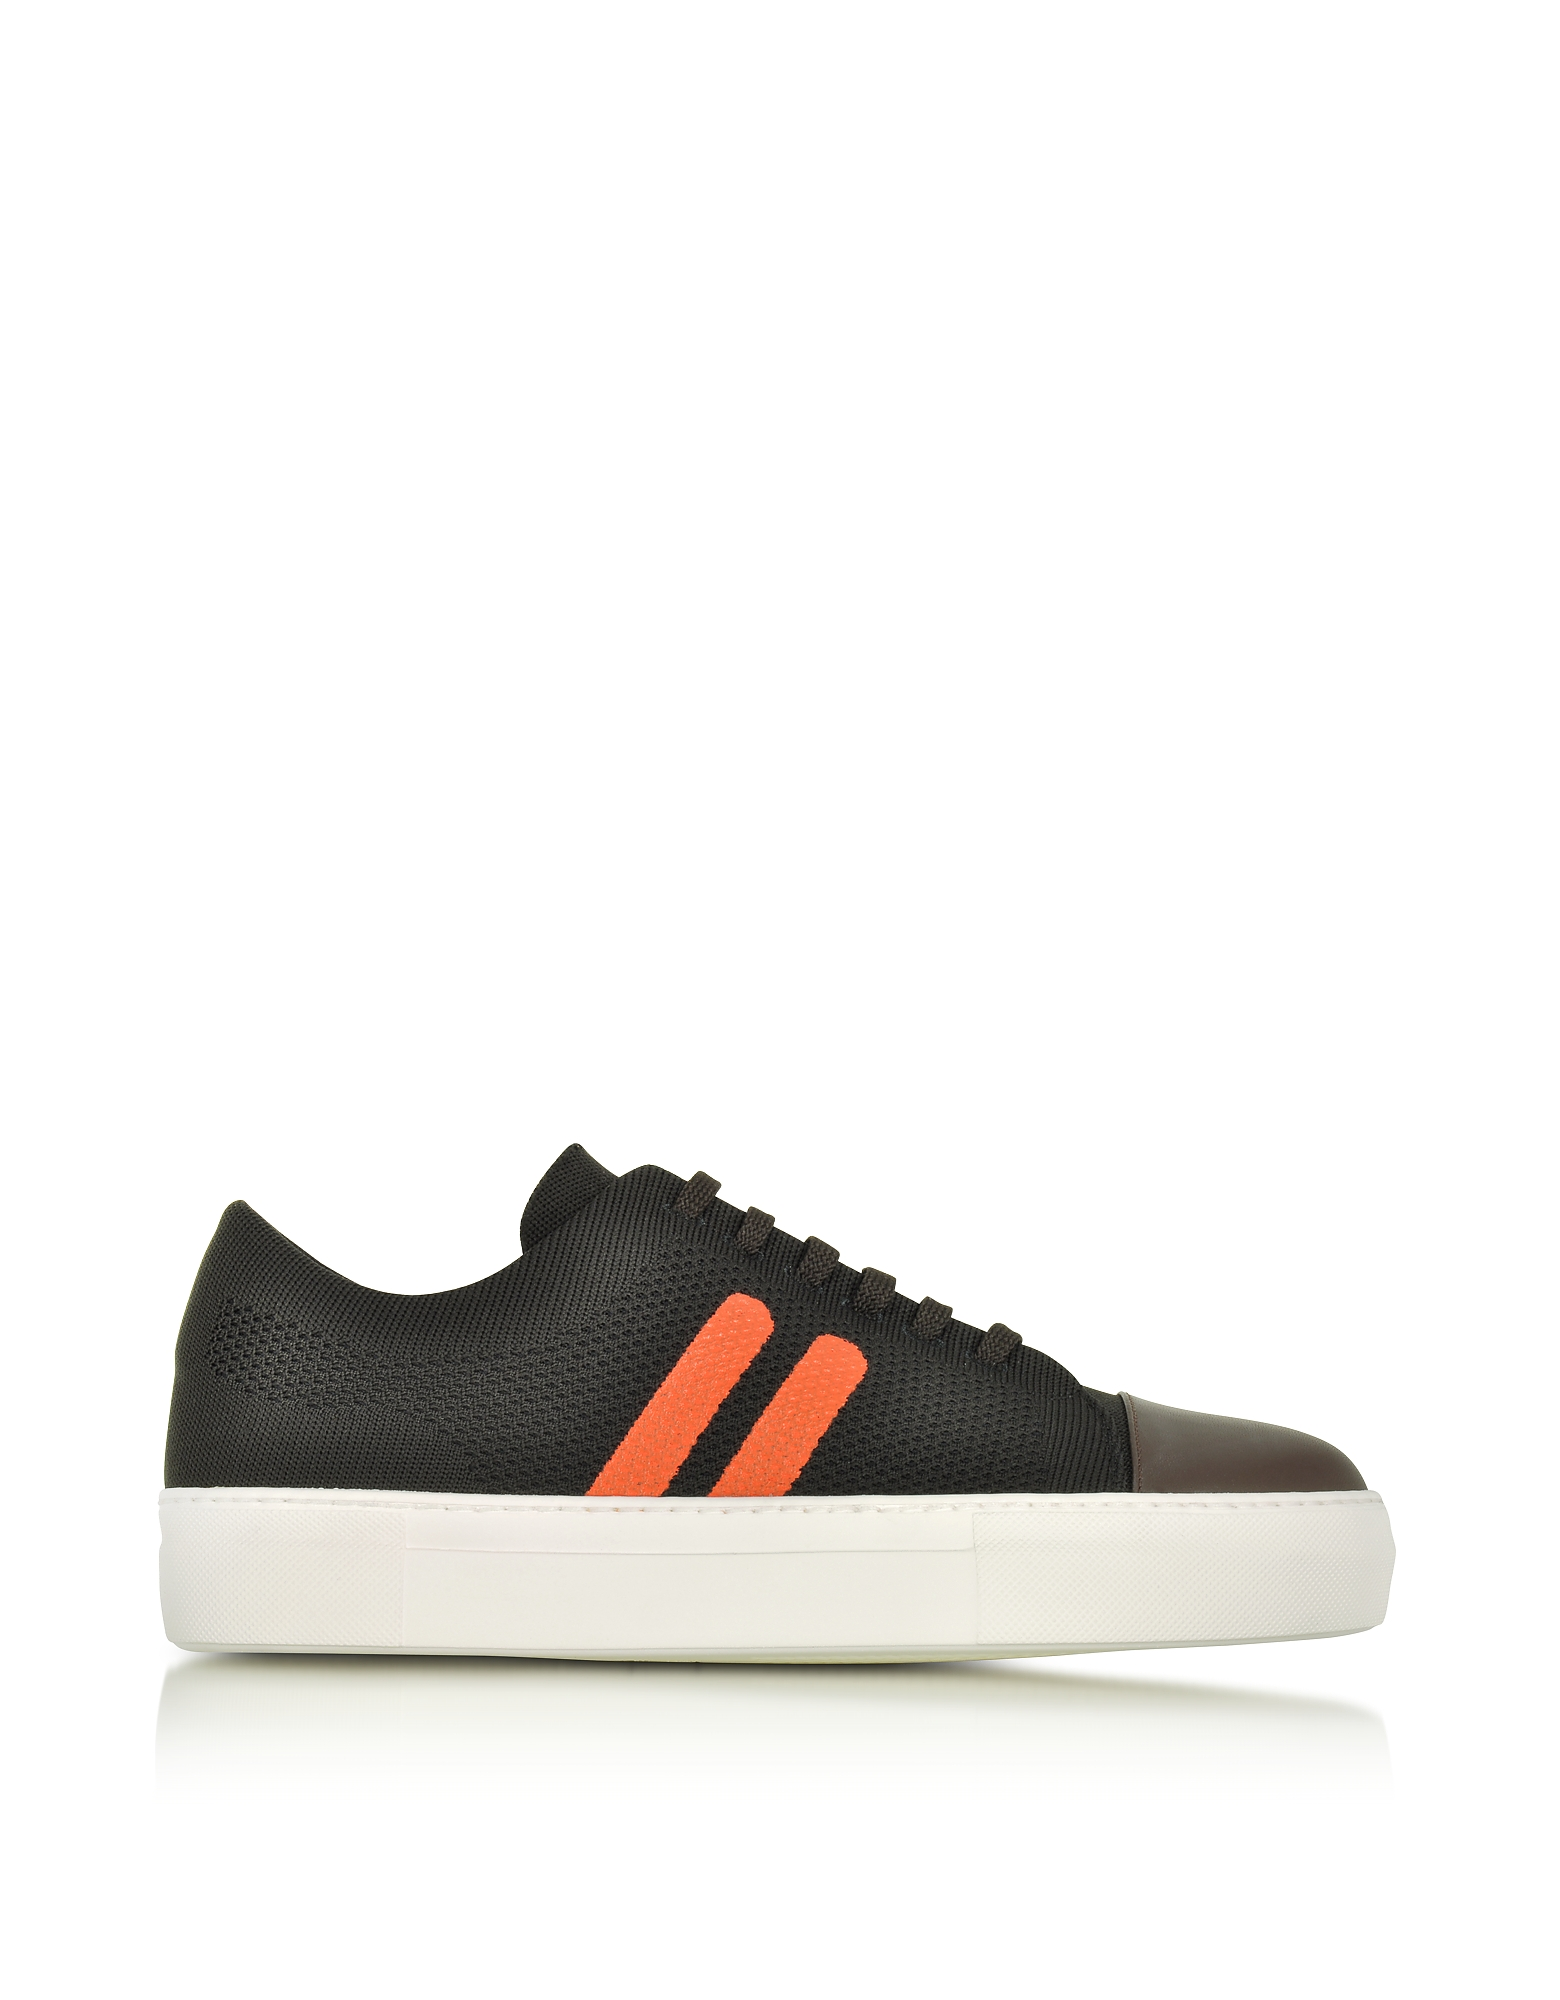 Image of Neil Barrett Designer Shoes, Chocolate/Orange Perforated Fabric and Nappa Leather Skateboard Sneakers